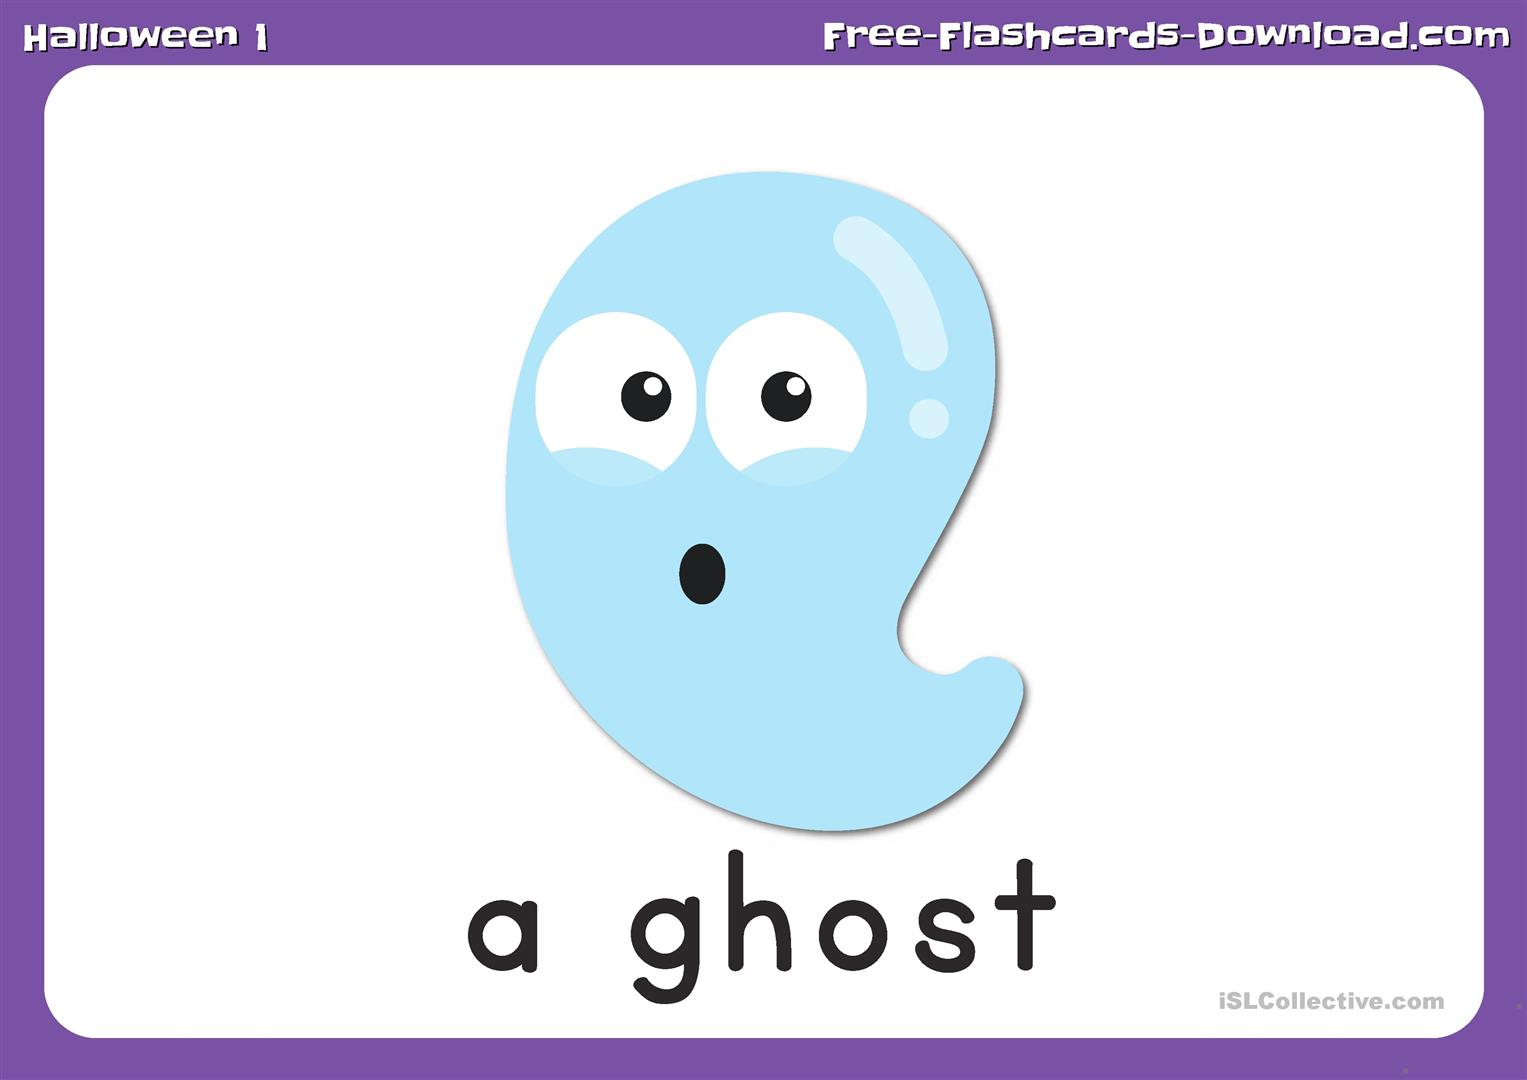 Halloween Flashcards Set 1 With Captions